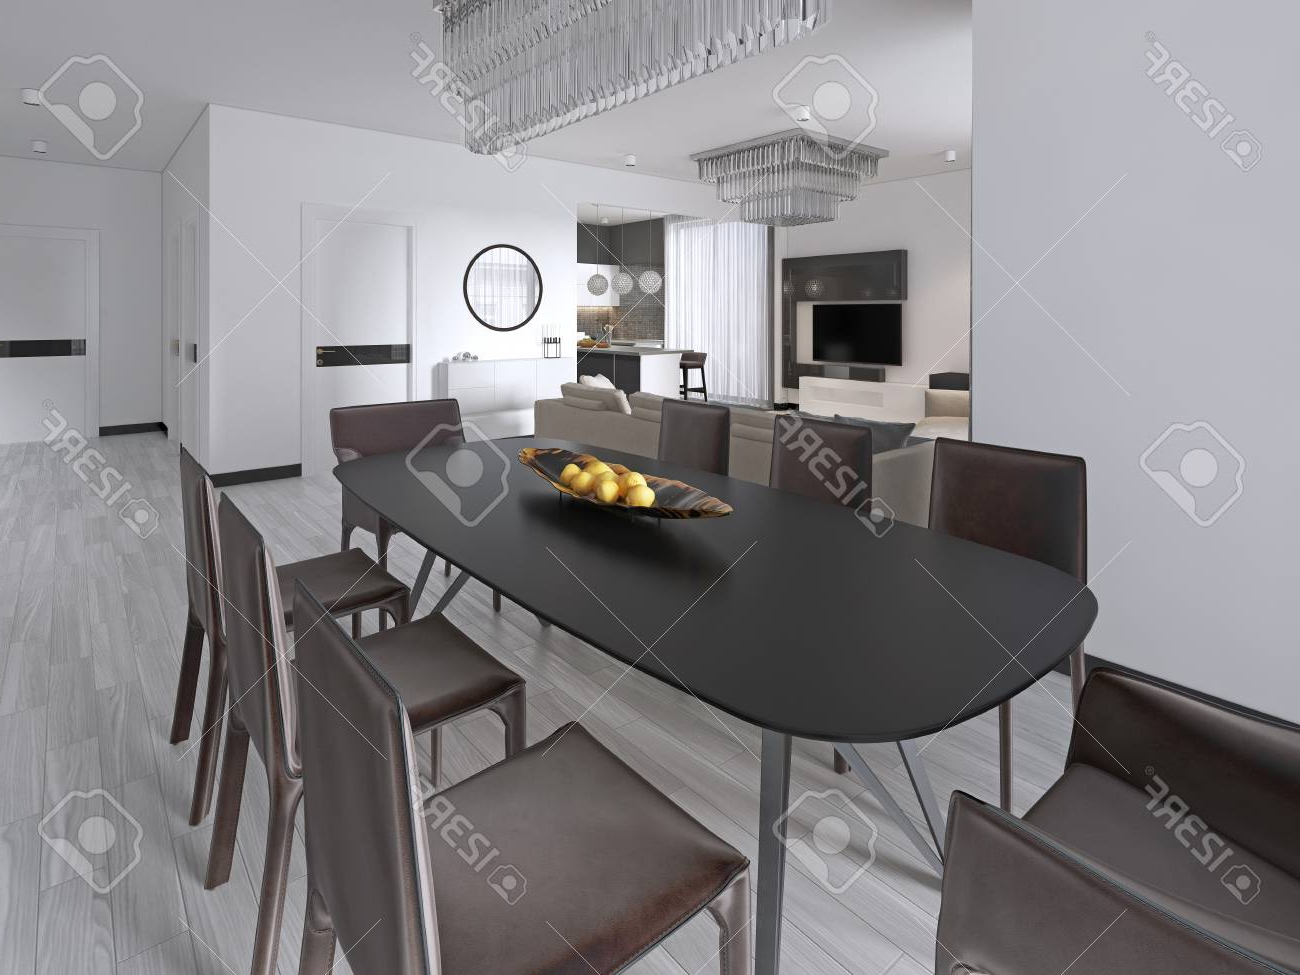 Most Recently Released Contemporary Dining Room With A Large Rectangular Dining Table. (View 29 of 30)